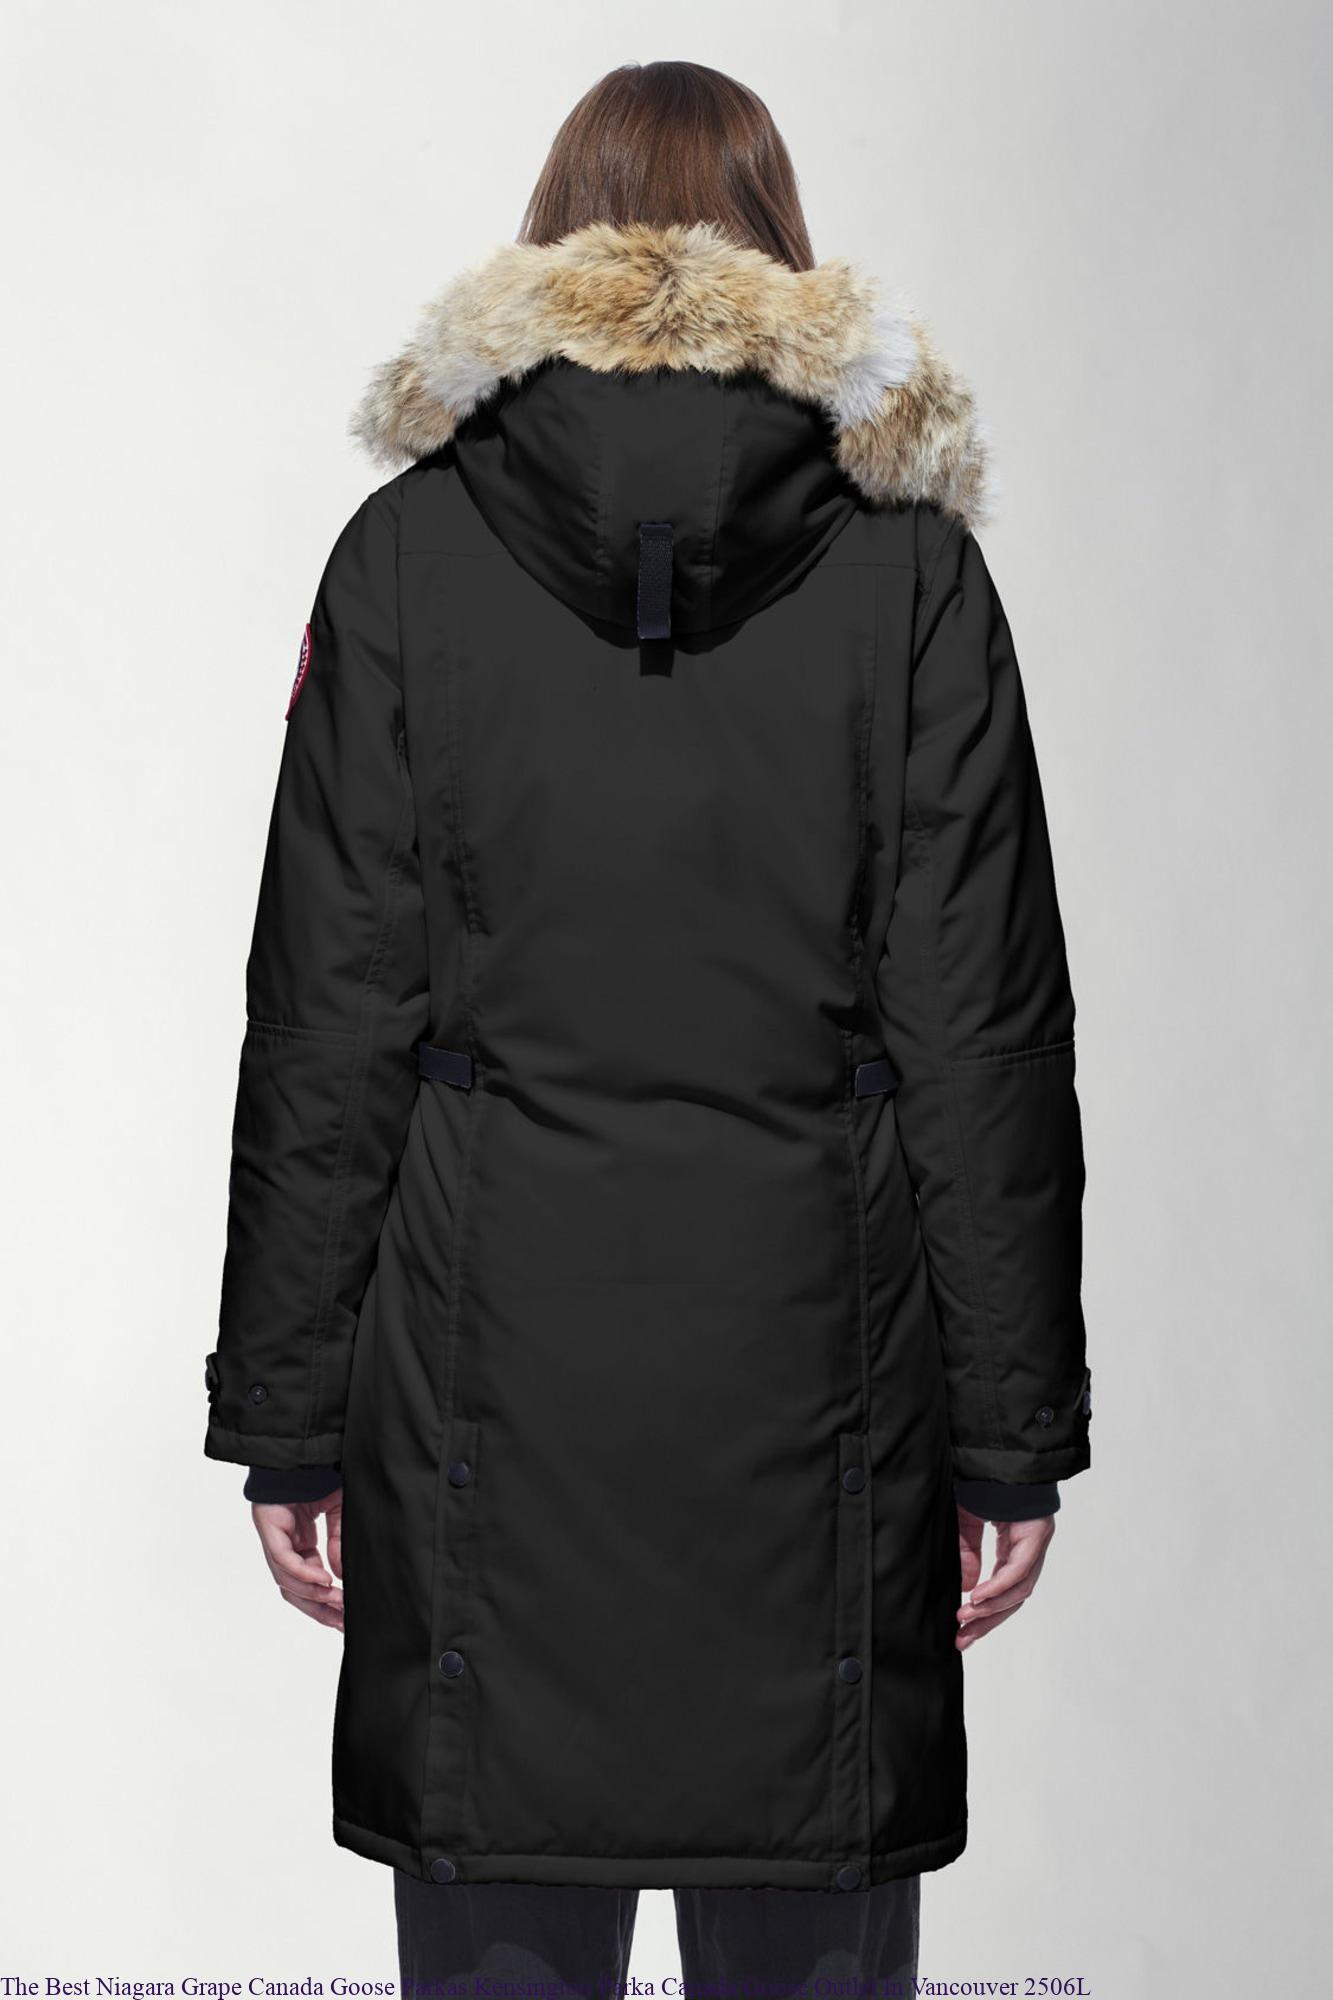 59e8f015fd194 The Best Niagara Grape Canada Goose Parkas Kensington Parka Canada Goose  Outlet In Vancouver 2506L